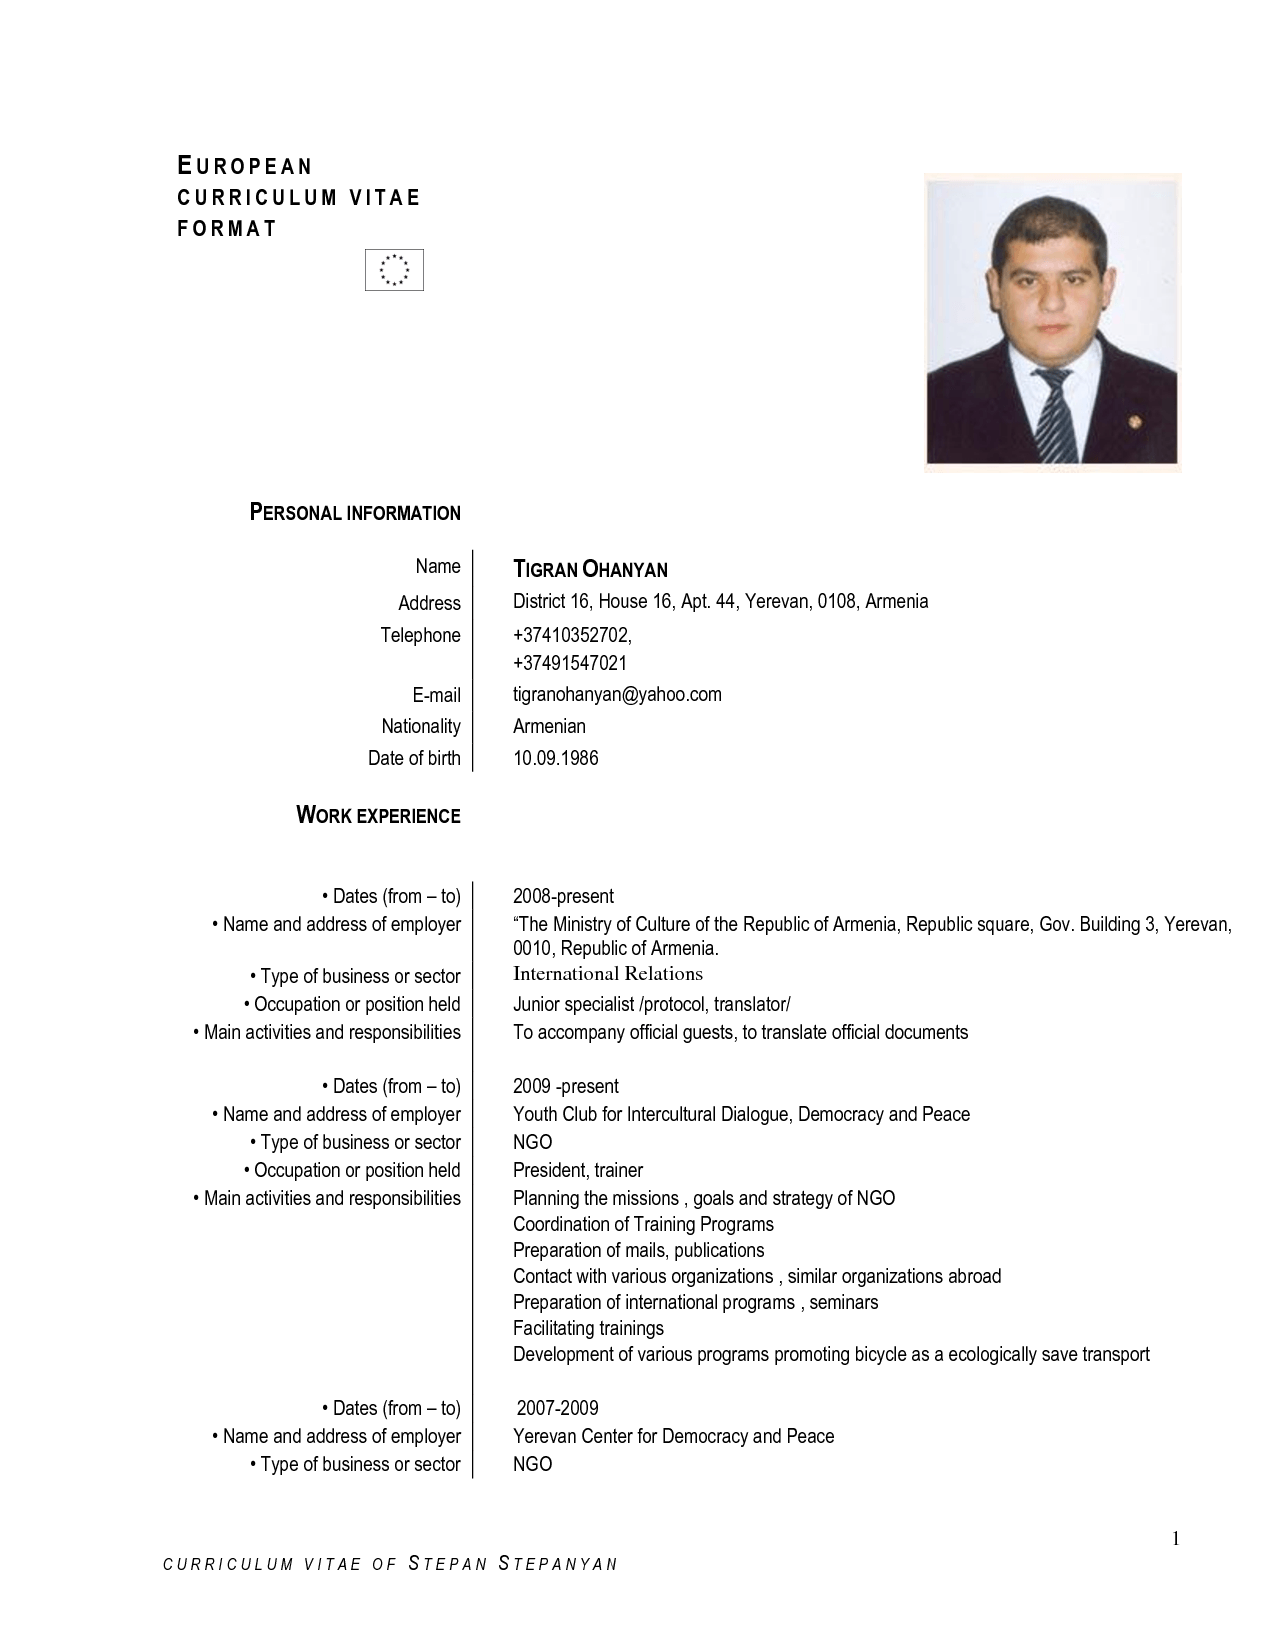 cv europass english template